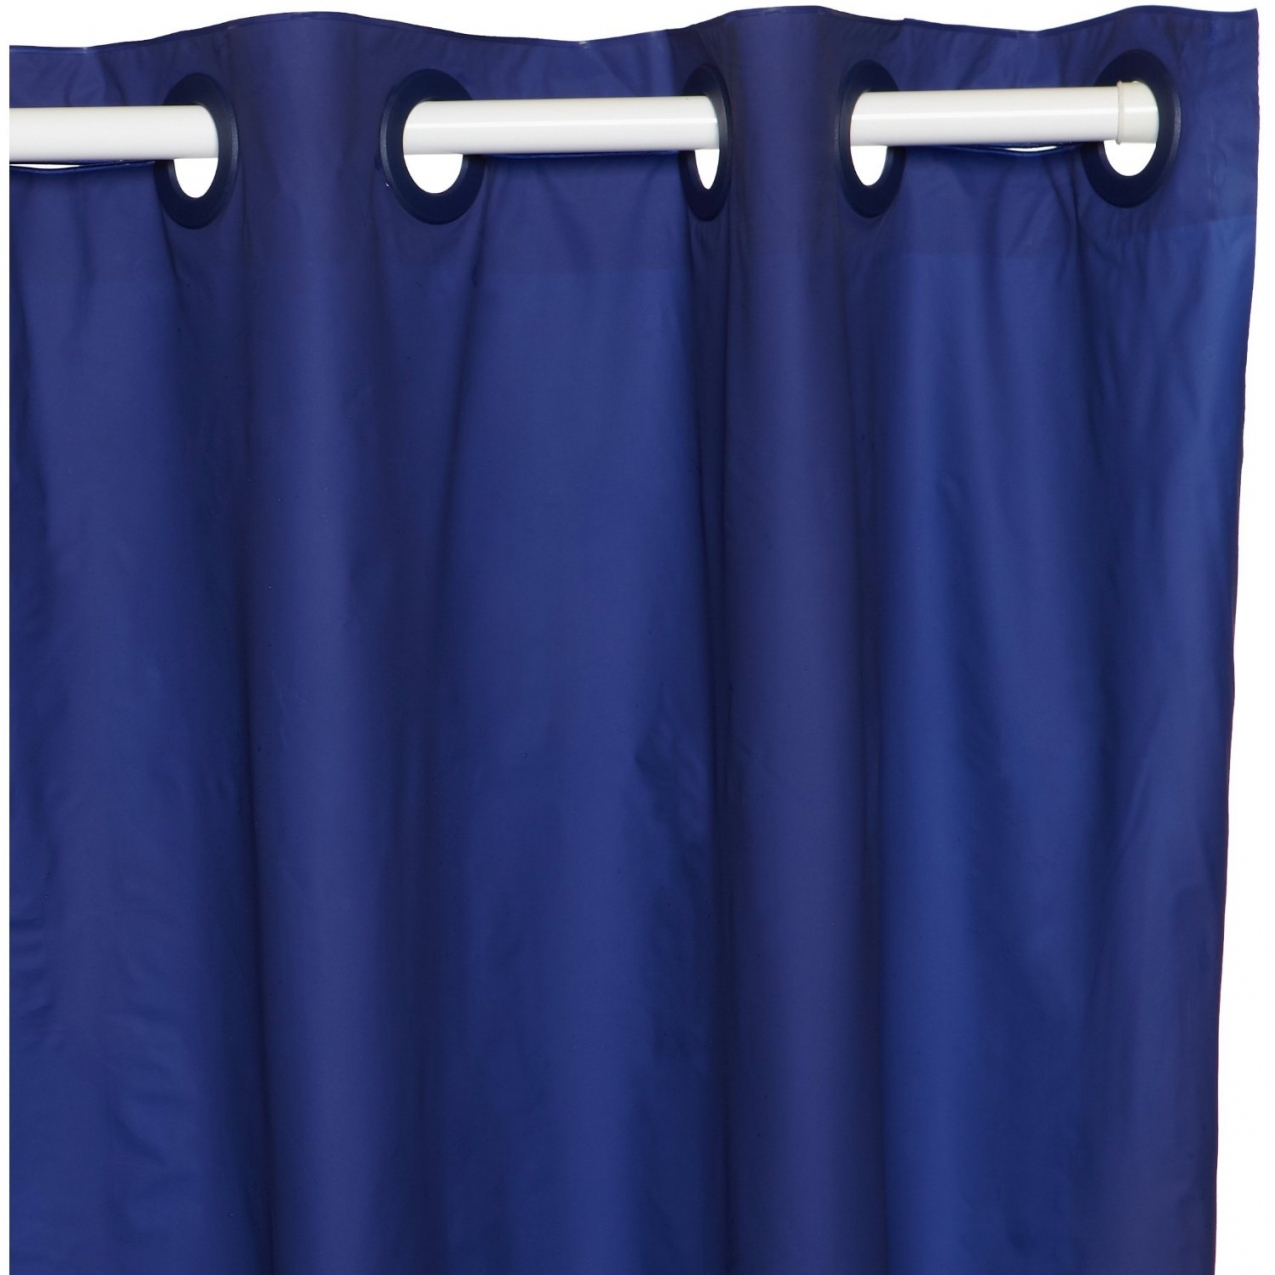 Marvelous Uncategorized Navy Blue Shower Curtain In Exquisite Luxury Royal Pertaining  To Measurements 1275 X 1275